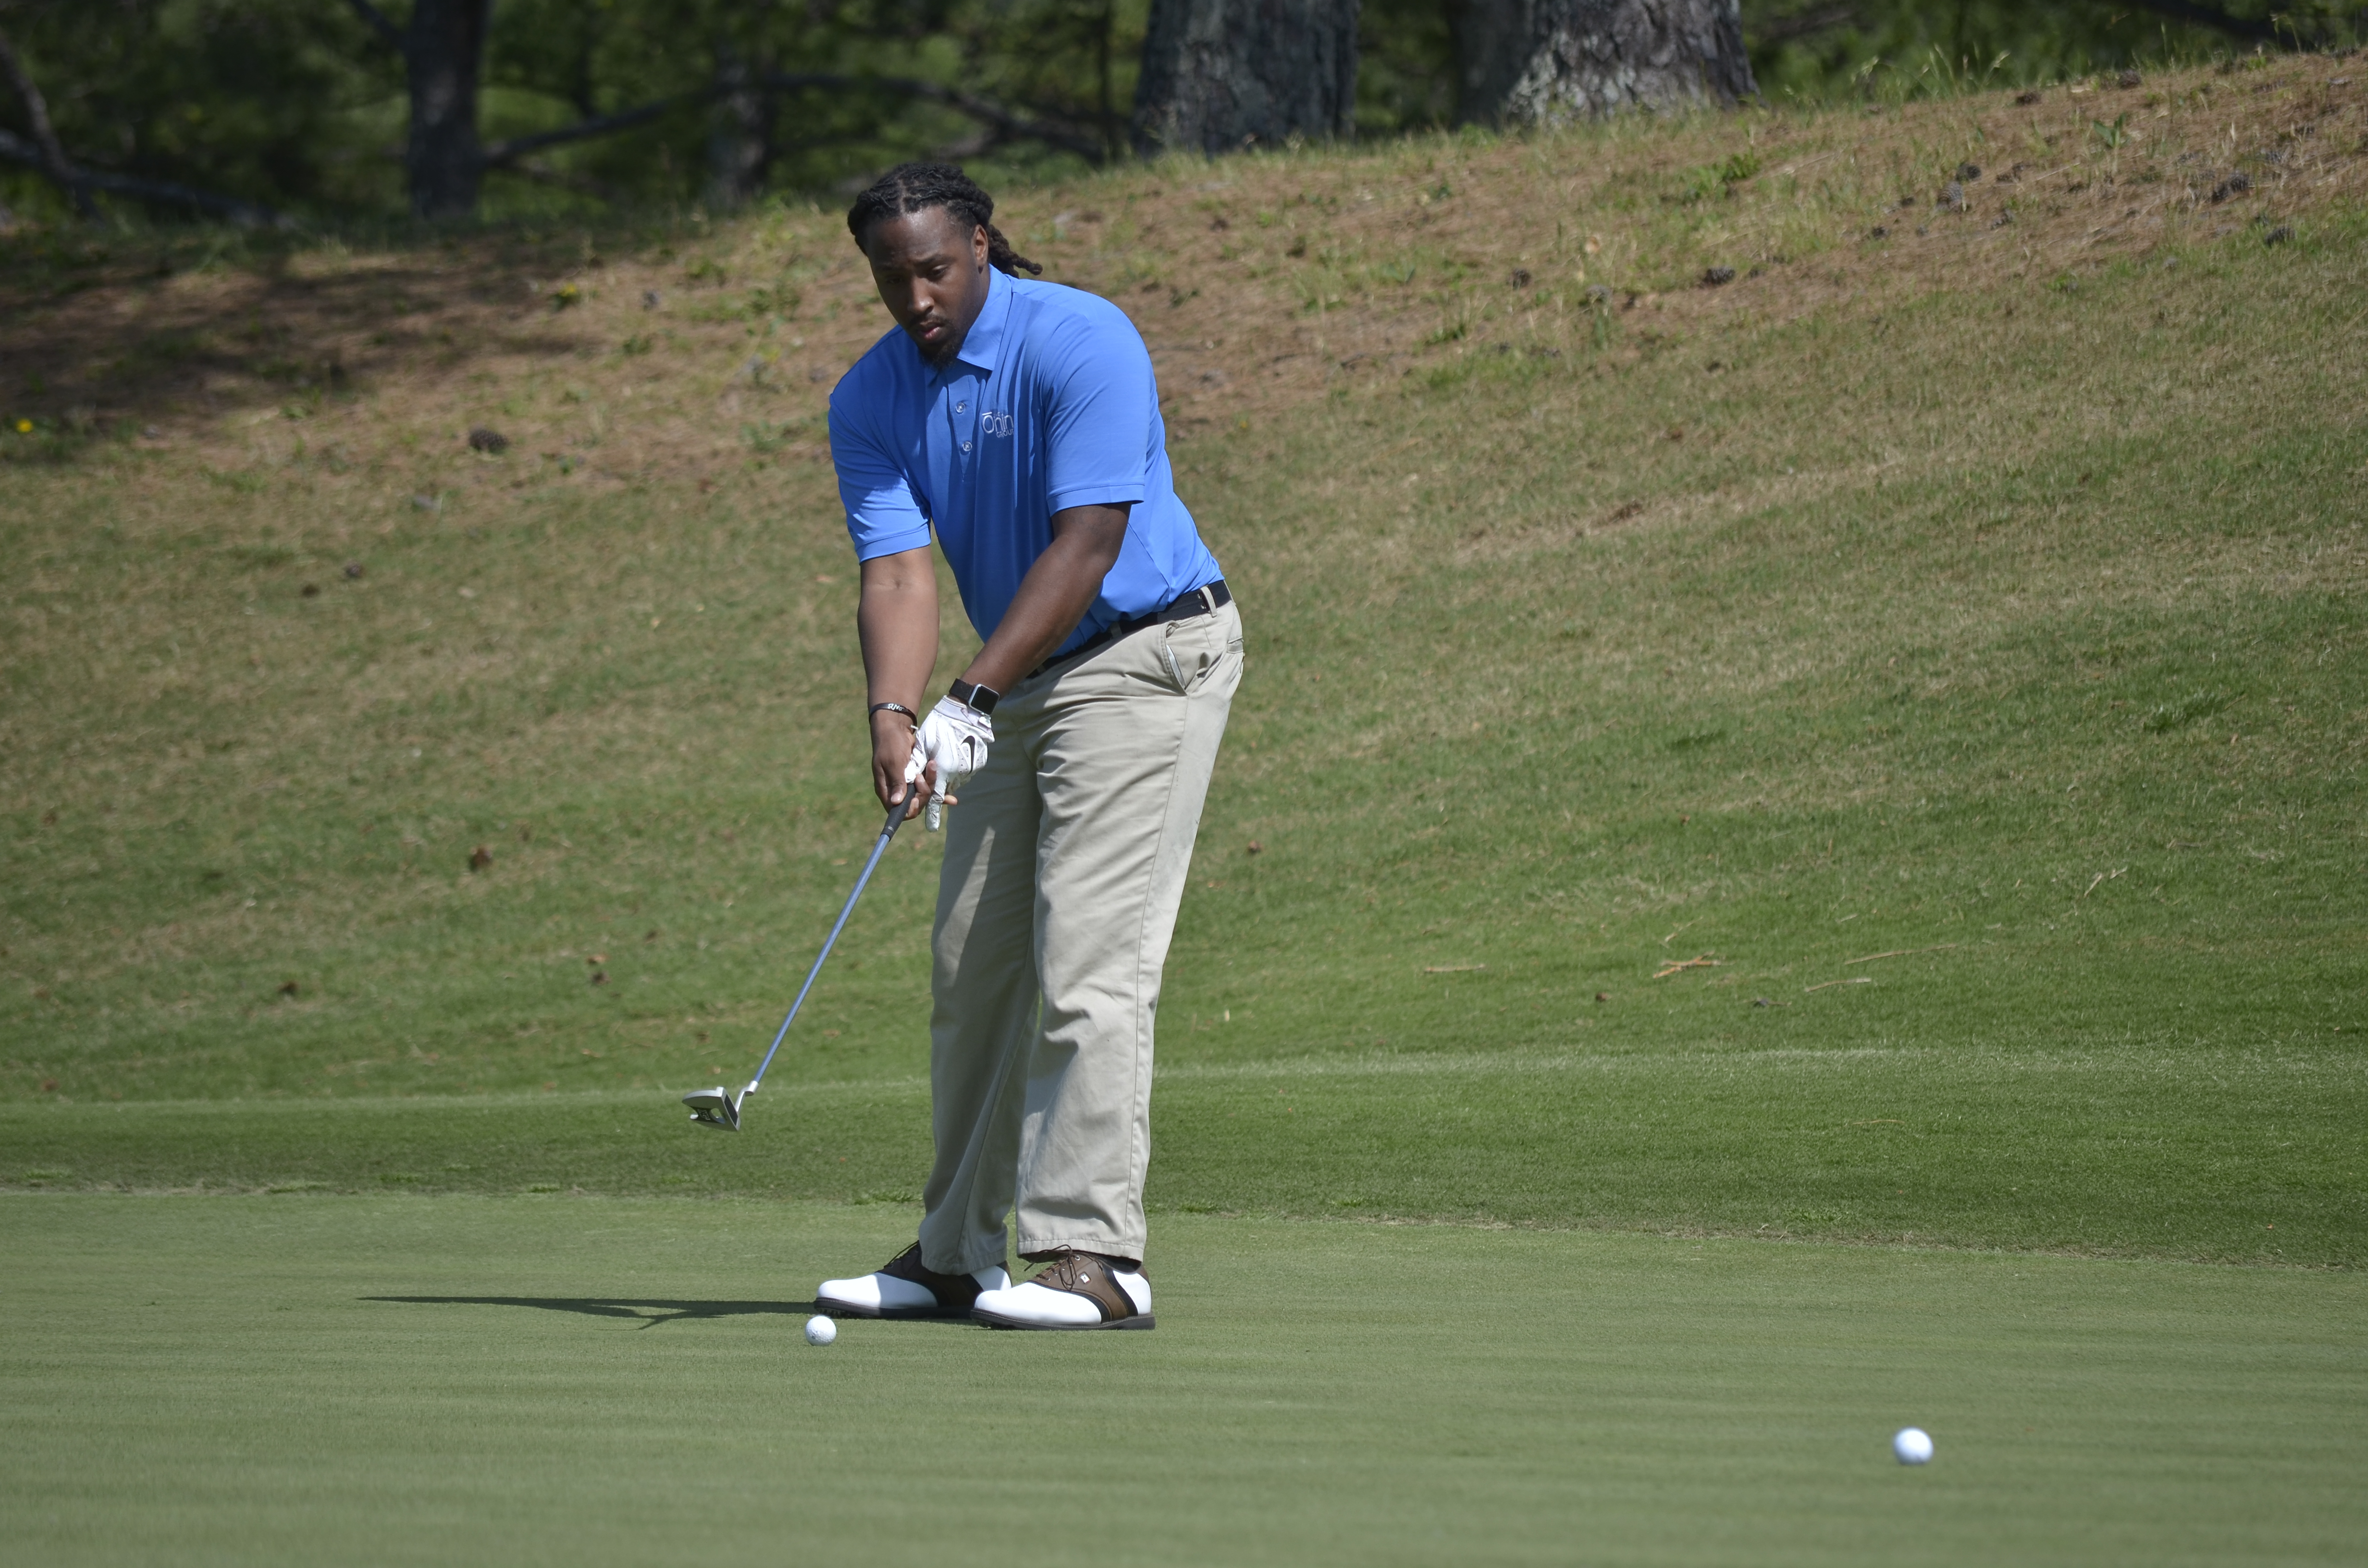 Brandon Nettles played with the Onin team during the Clerestory Inc. third annual golf tournament.